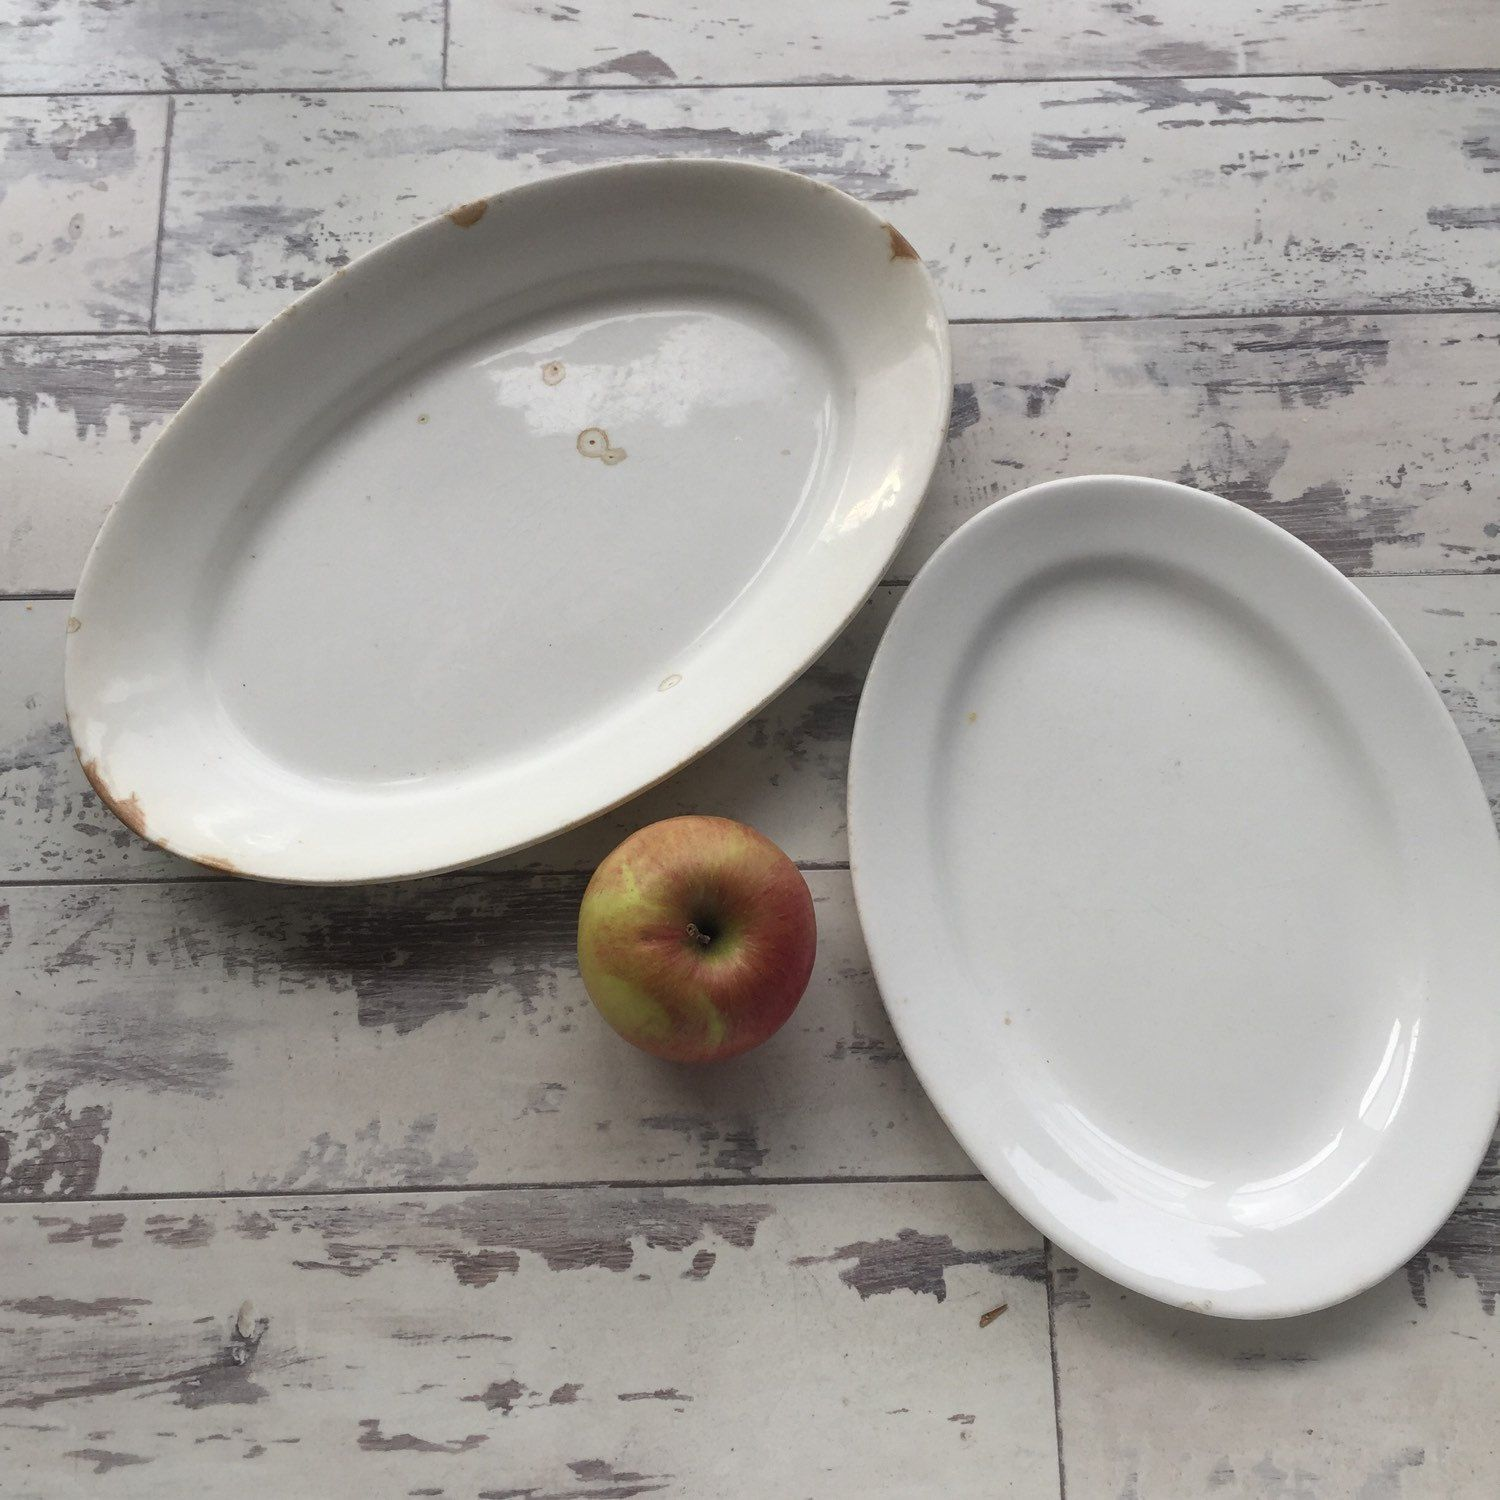 Antique Ironstone Platters - Thompson Stone China -Distressed Vintage by TheClassicButterfly on Etsy